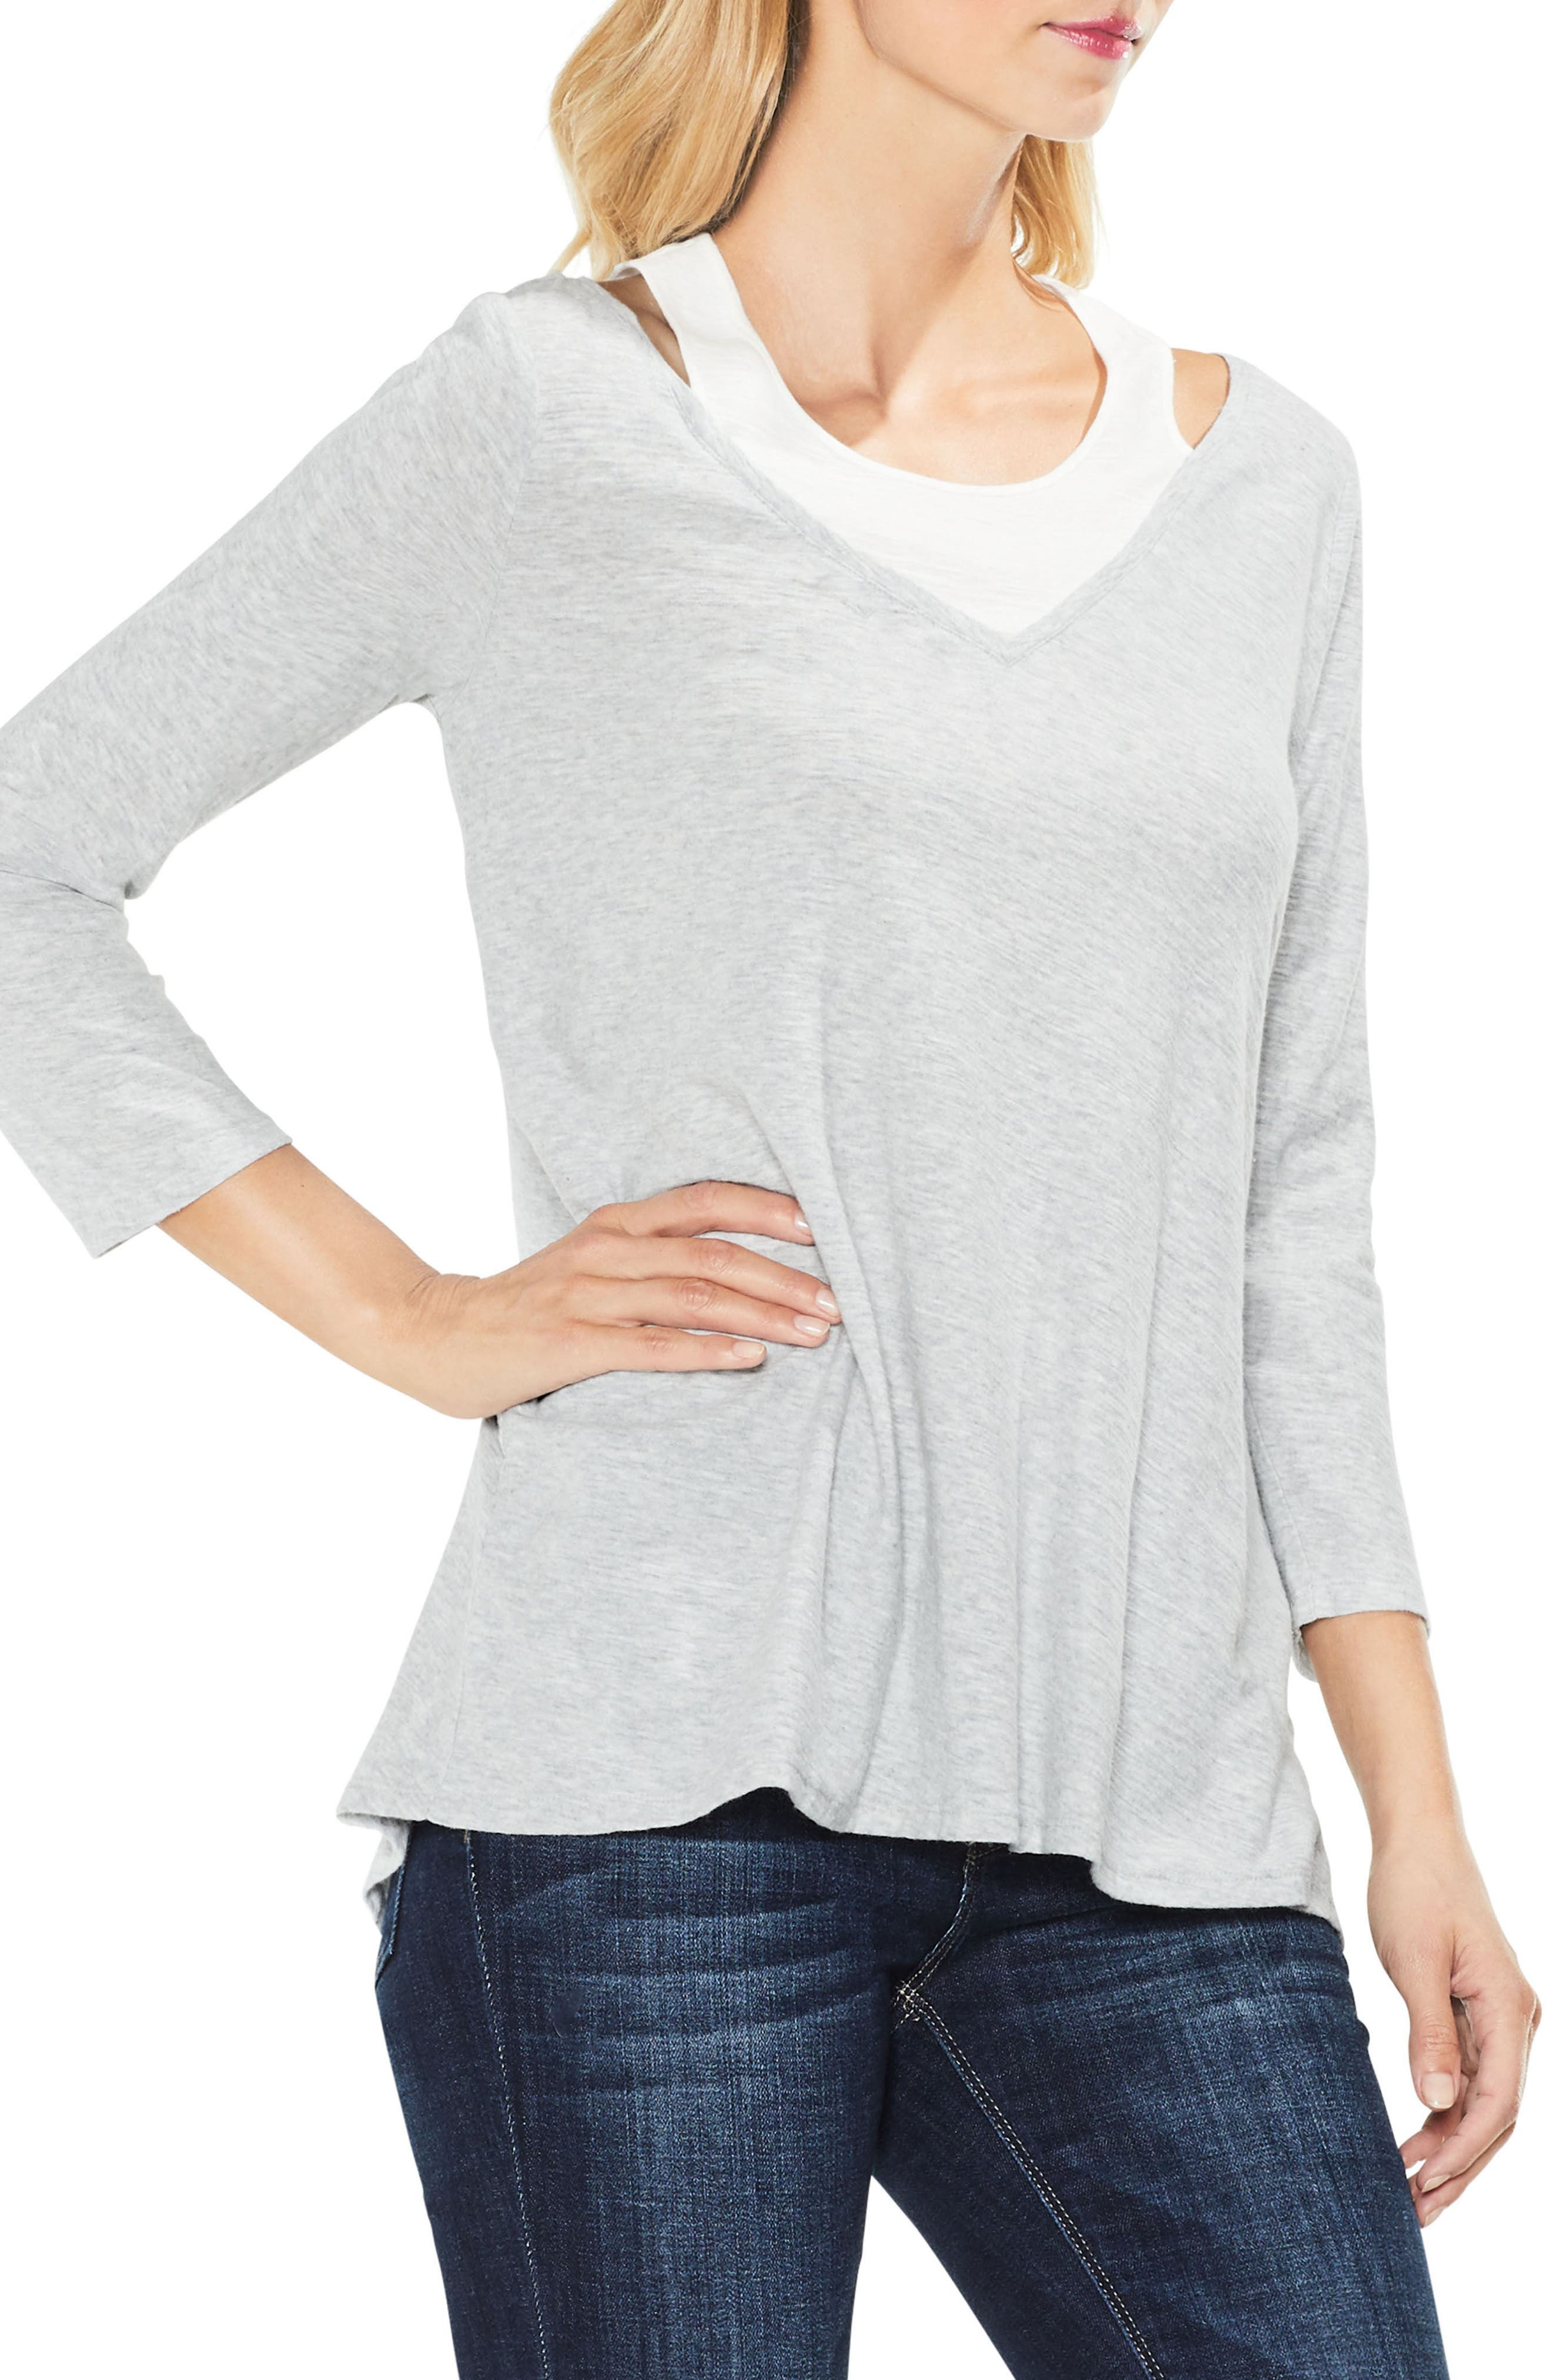 Two by Vince Camuto Layered Top,                             Main thumbnail 1, color,                             050